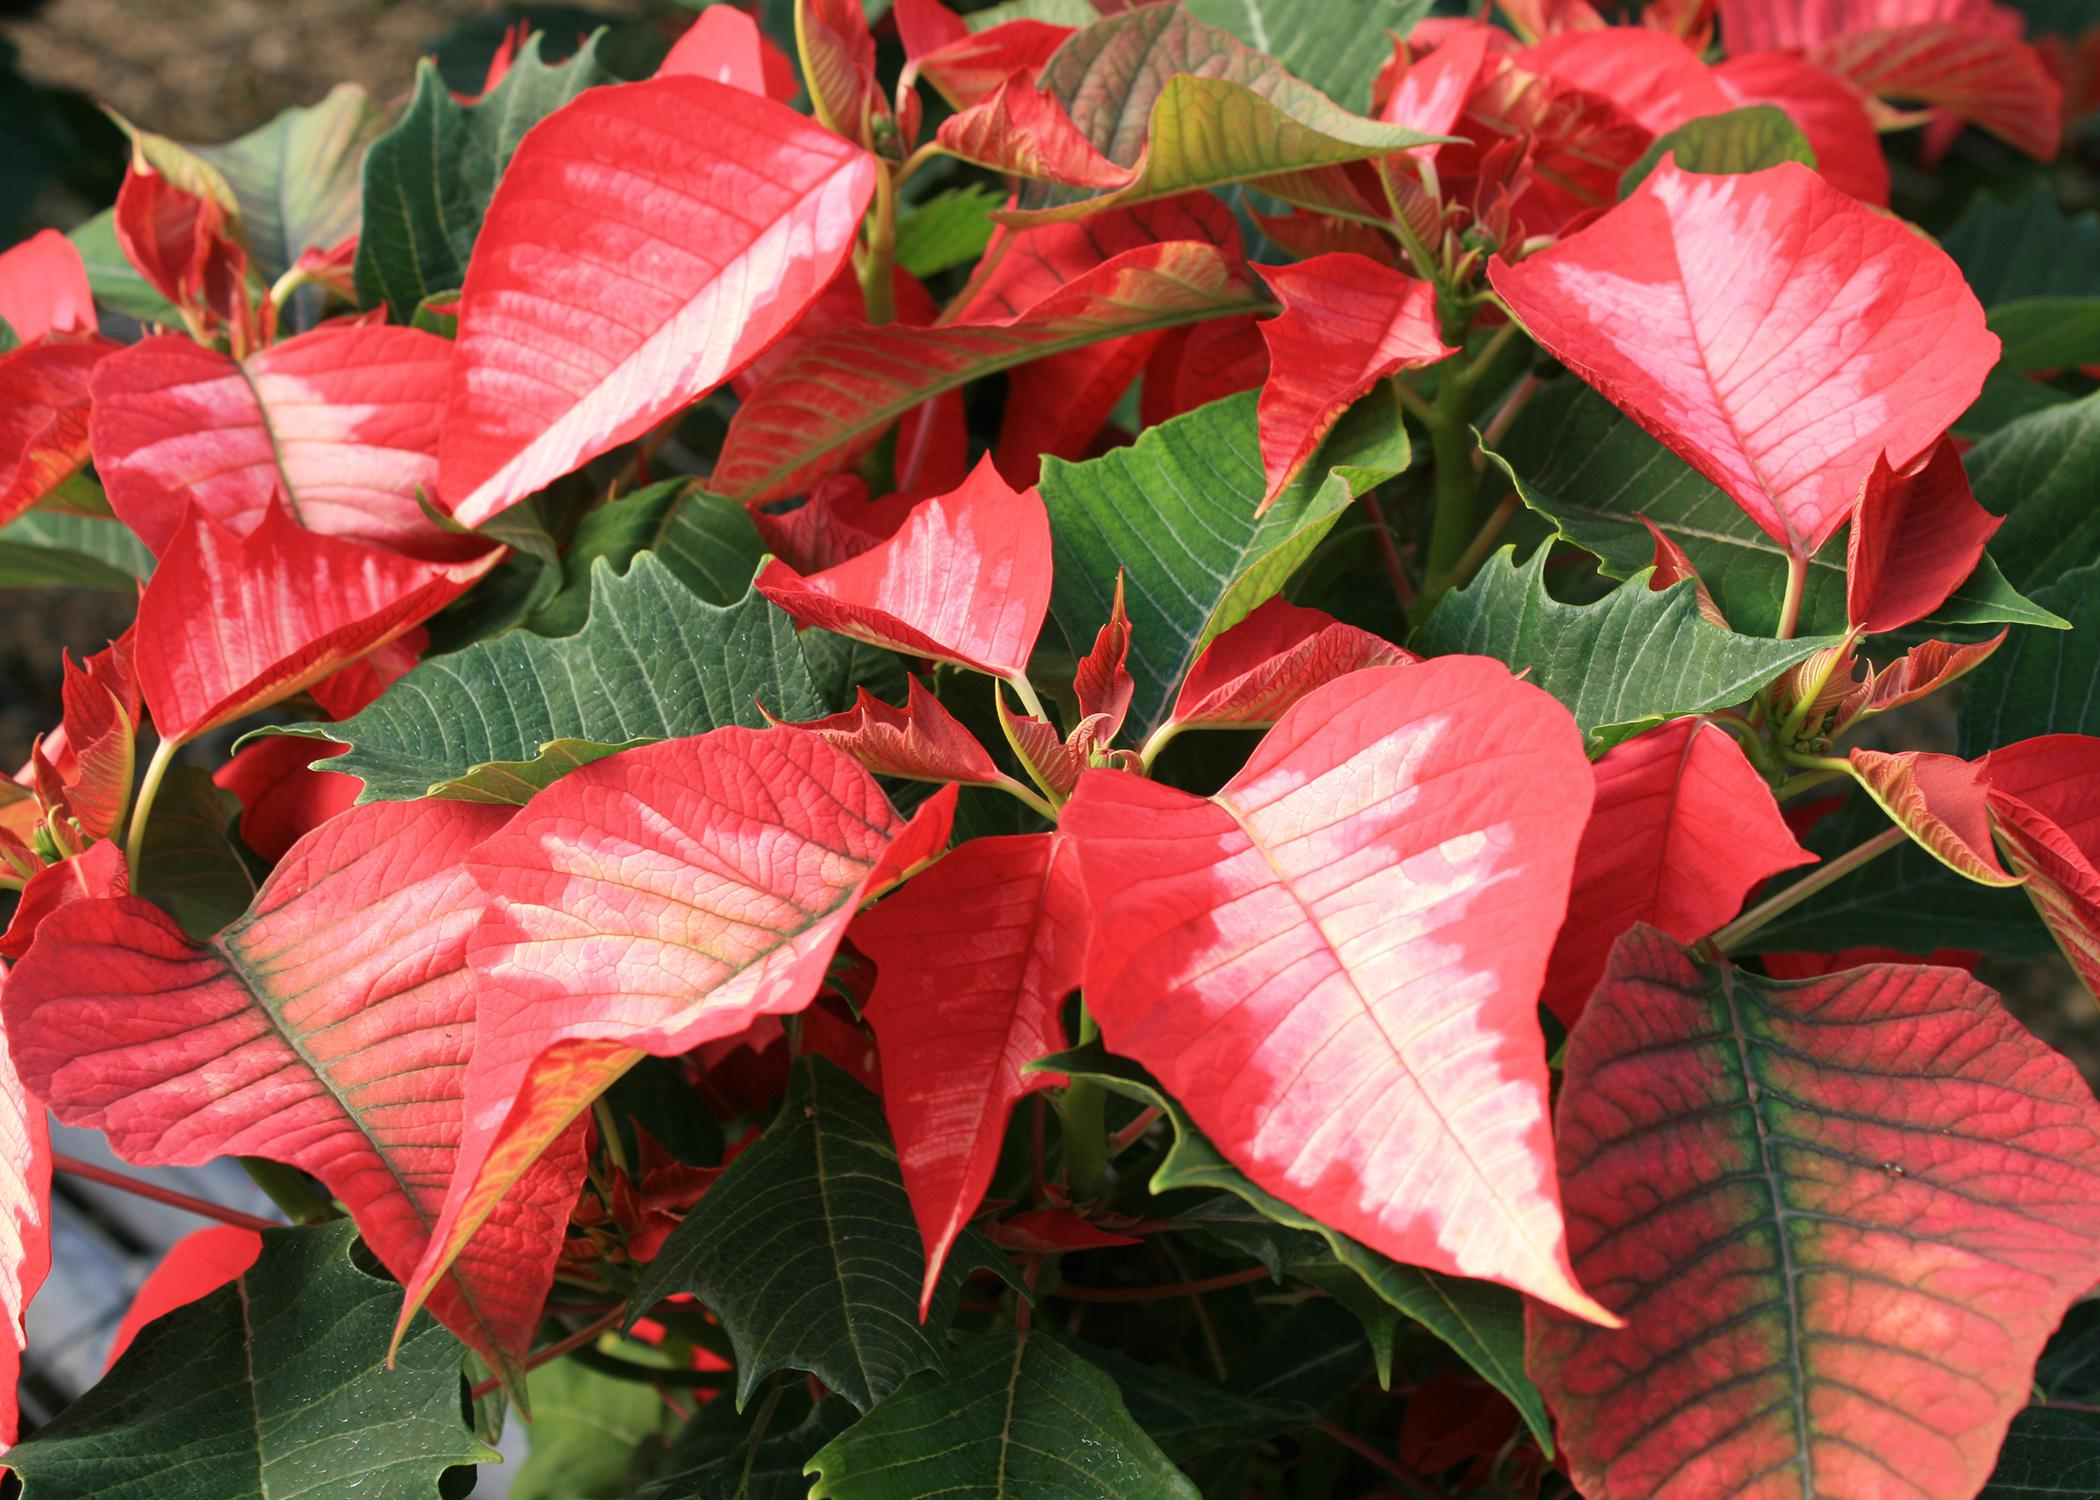 Poinsettias such as this Ice Punch selection are part of the expected scenery and decorations of Christmas. They come in a wide variety of colors and styles, and with a little care, they can last past the holiday season. (Photo by MSU Extension Service/Gary Bachman)